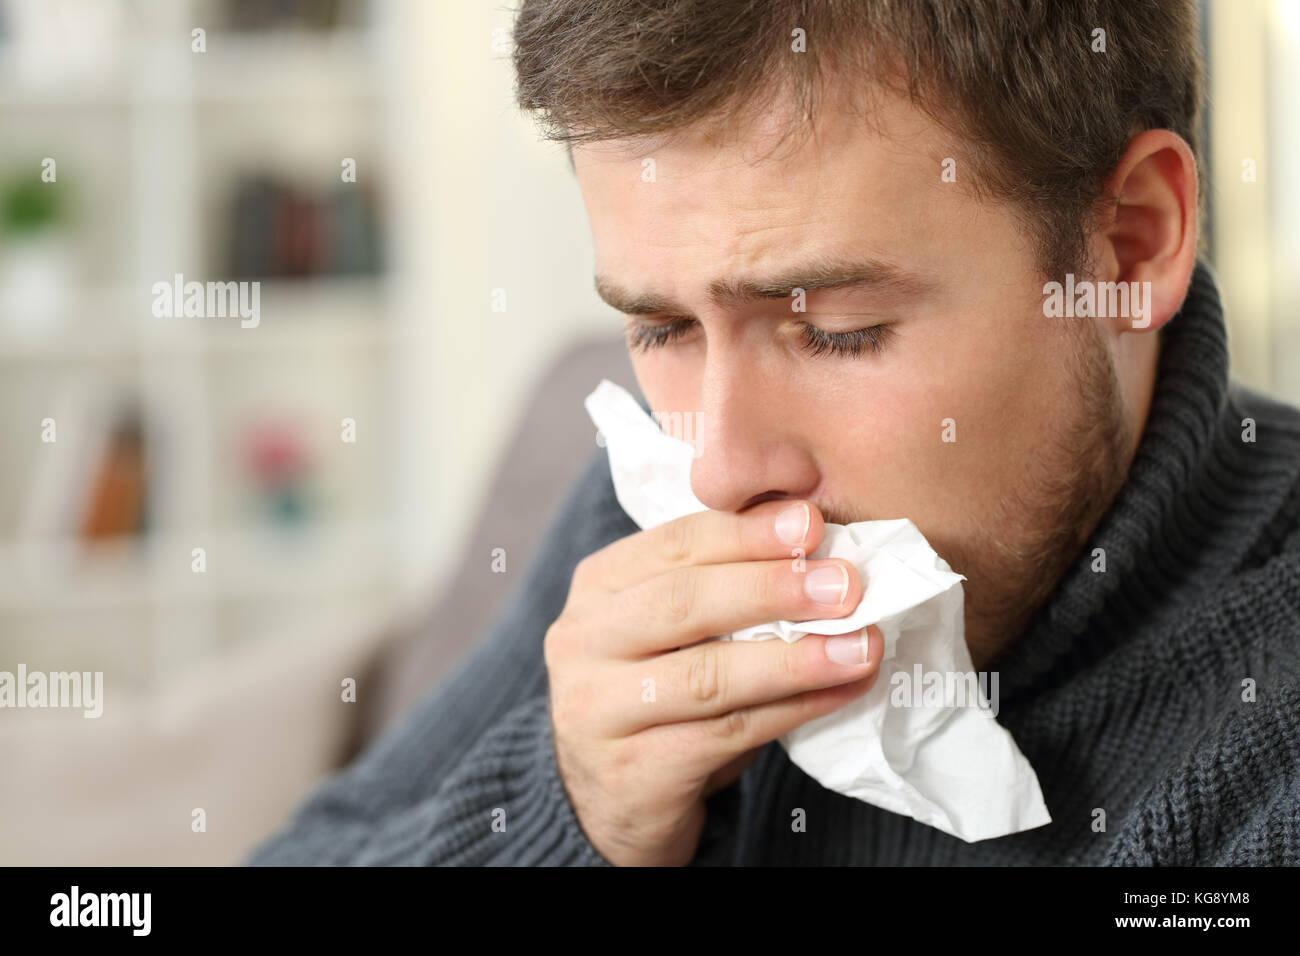 Man coughing covering mouth with a tissue sitting on a couch in a house interior - Stock Image